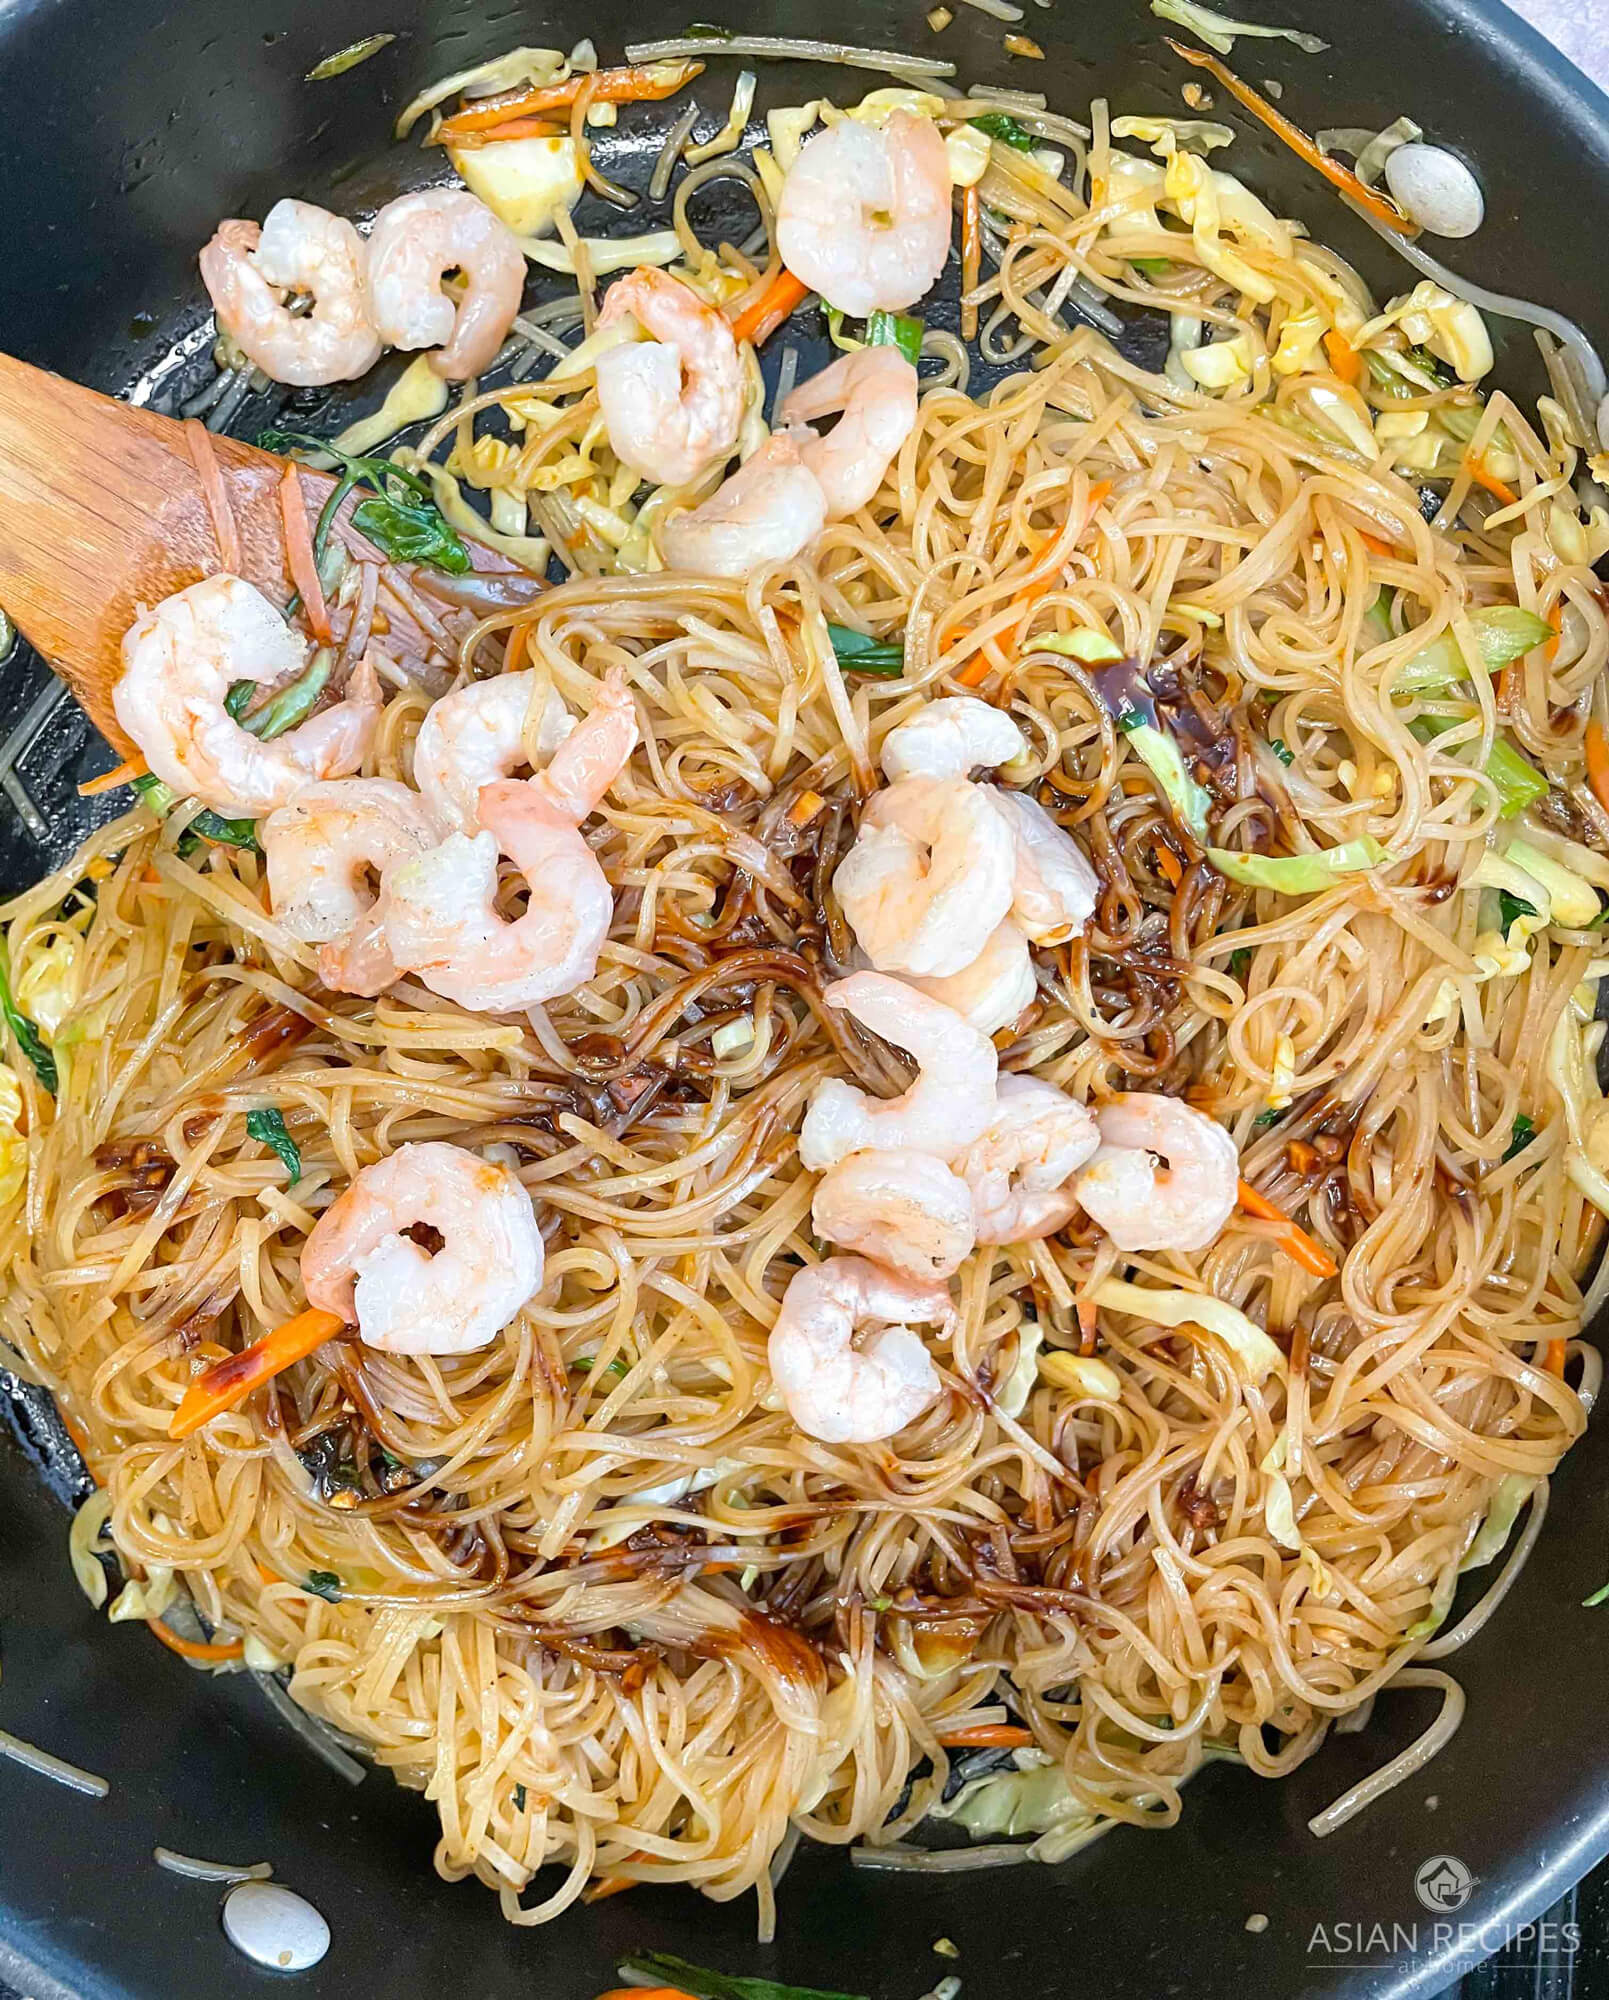 Add in the shrimp and the gochujang spicy stir-fried noodles.